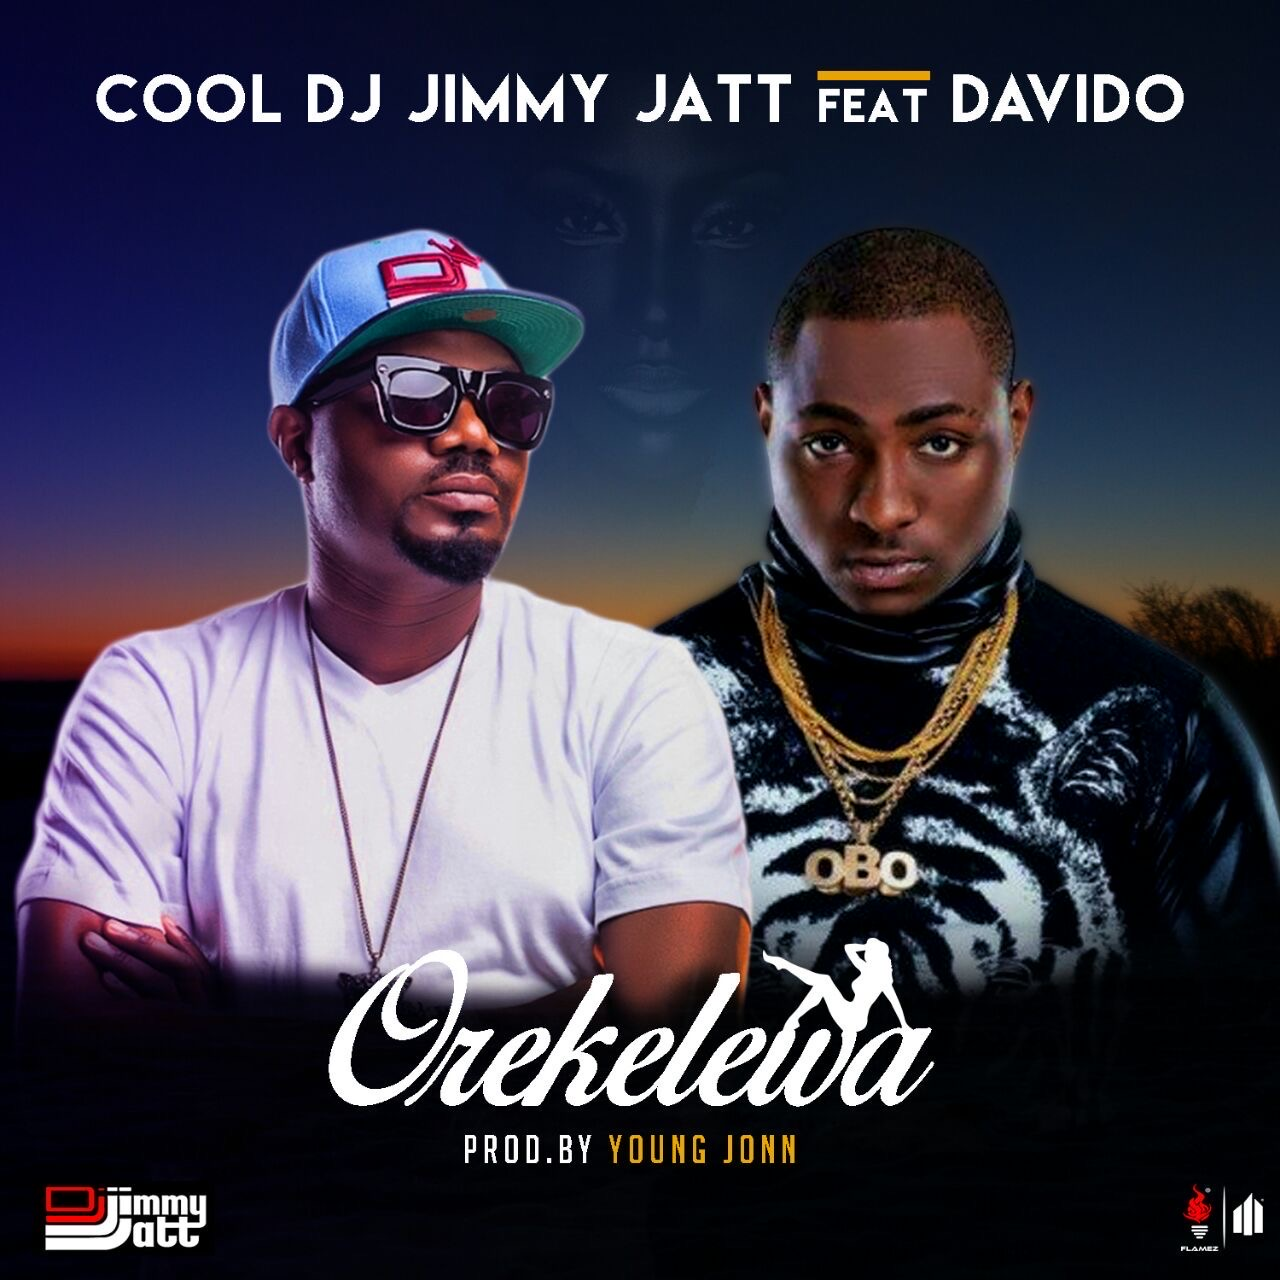 DJ Jimmy Jatt - Orekelewa ft. Davido